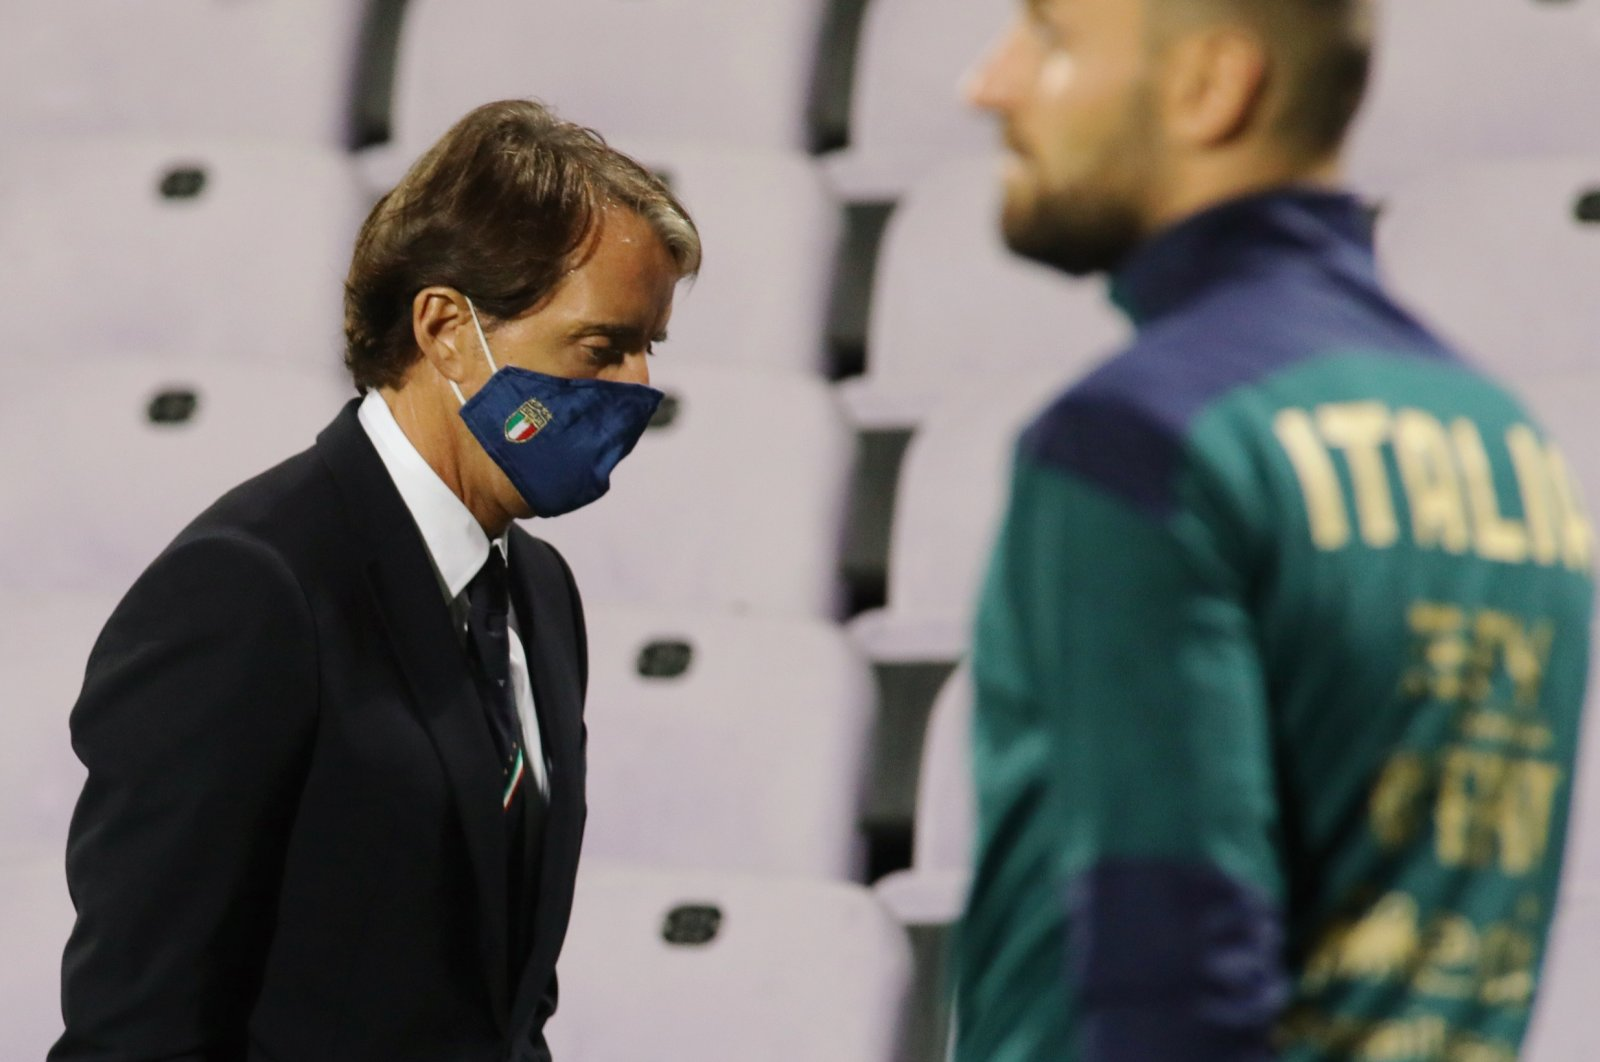 Italy's coach Roberto Mancini wears a face mask during a game against Moldova, in Florence, Italy, Oct. 7, 2020. (AP Photo)